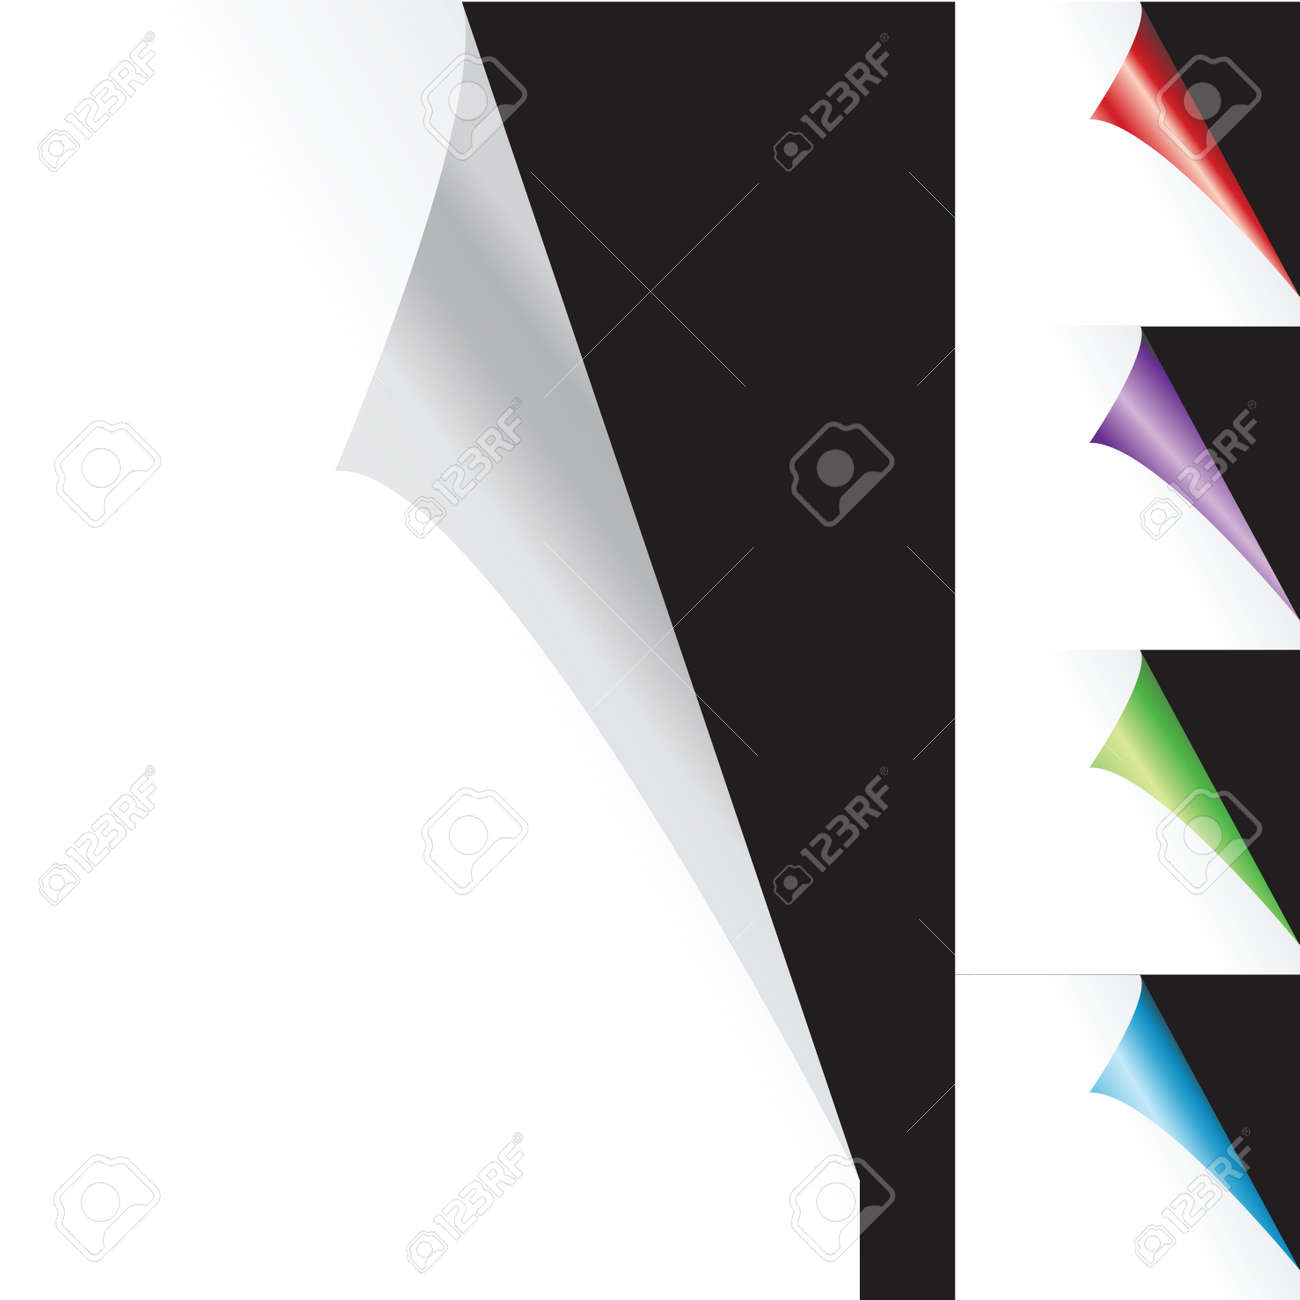 Background with sticker pages Stock Photo - 7321267